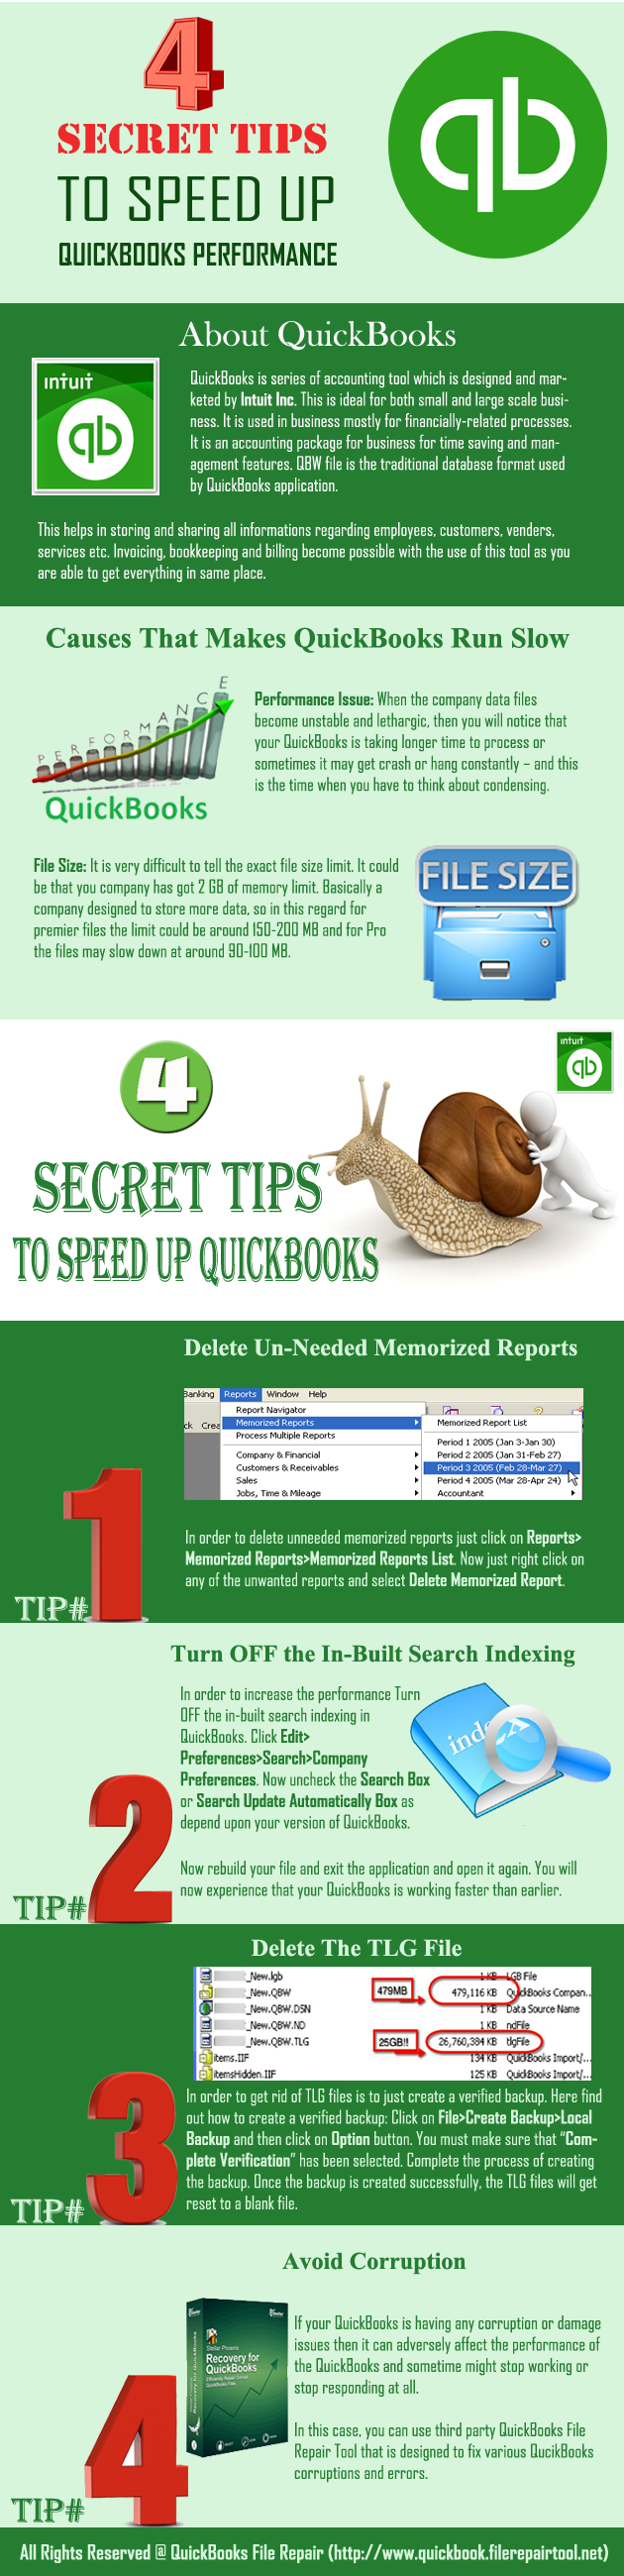 4-Secret-Tips-to-Speed-Up-QuickBooks-Performance-infographic-plaza